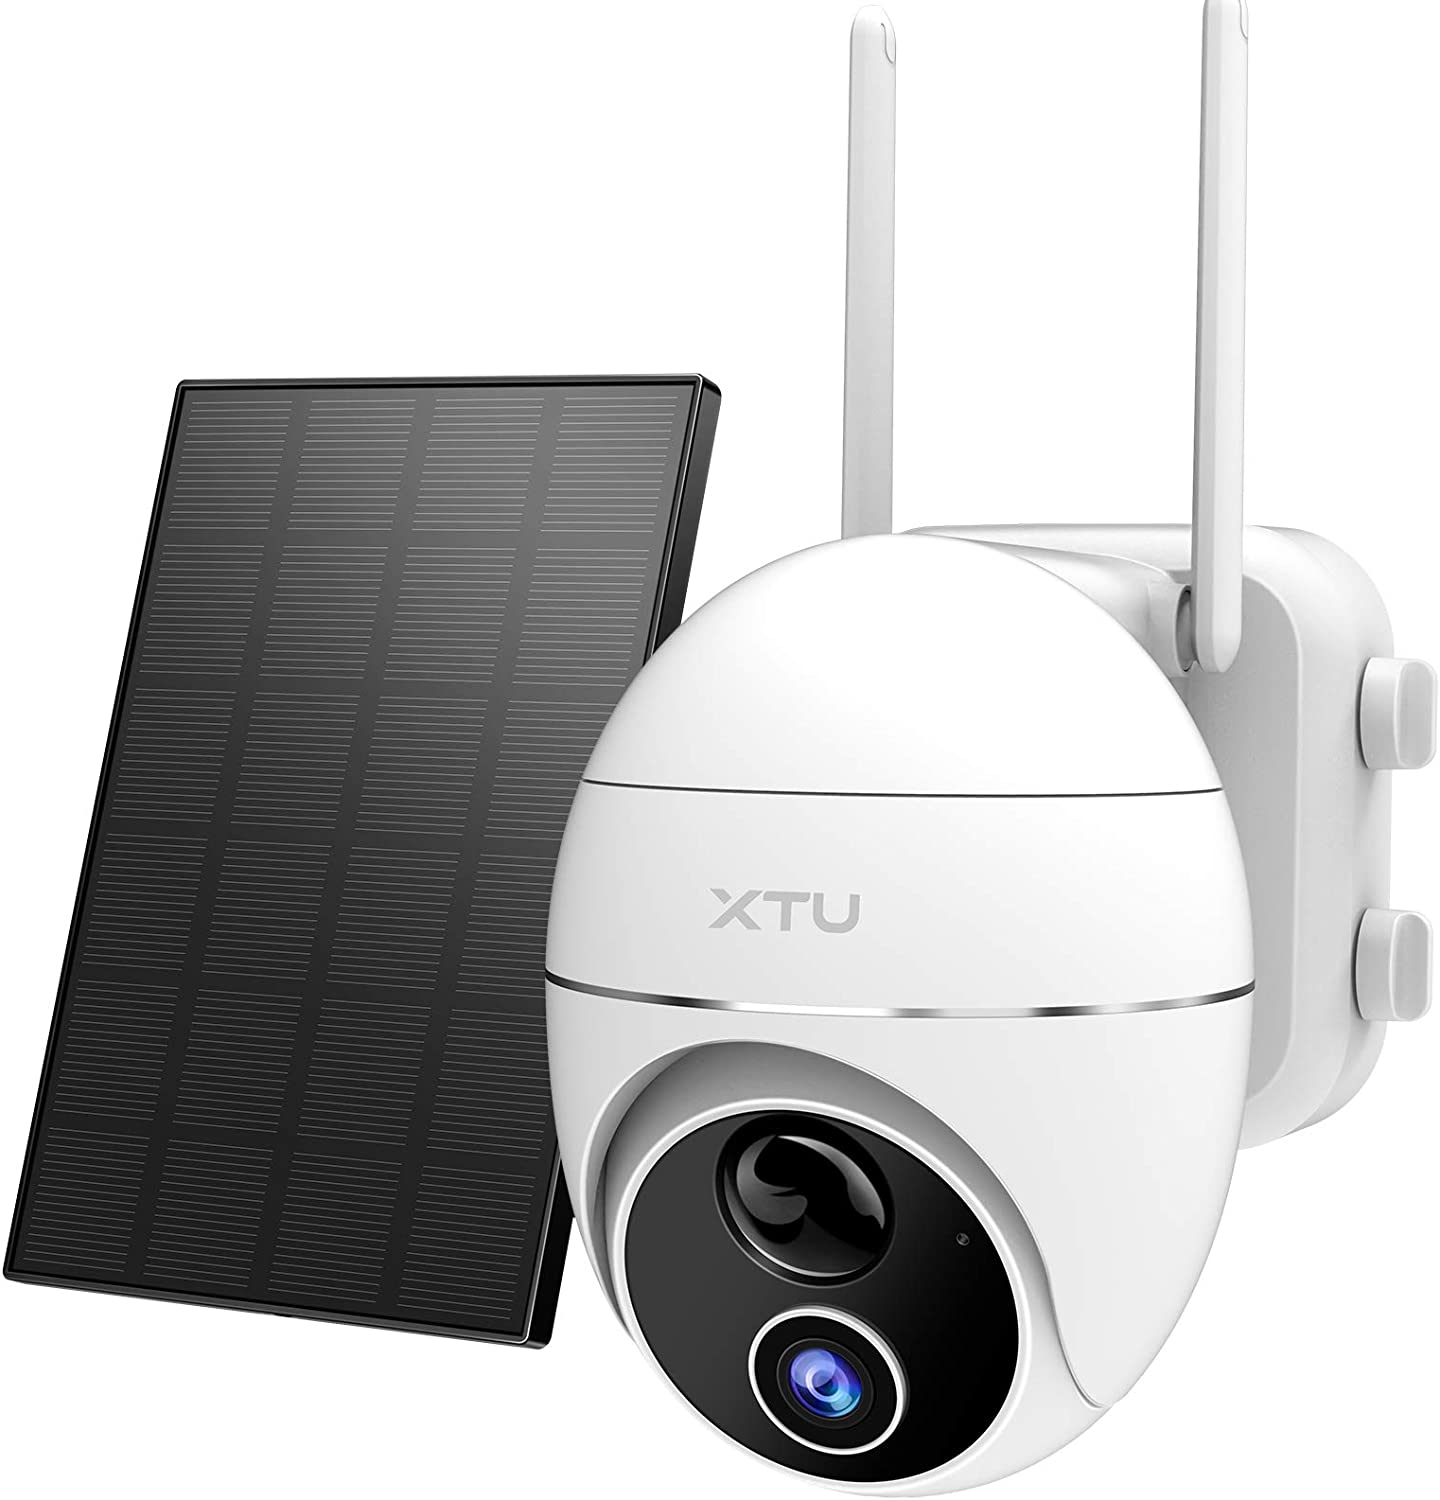 Wireless Outdoor Security Camera, XTU 360° Pan Tilt Solar Powered 2.4G WiFi Home Security Camera with Mobile App, 15000mAh Rechargeable Battery Surveillance Camera with Night Vision/Motion Detection